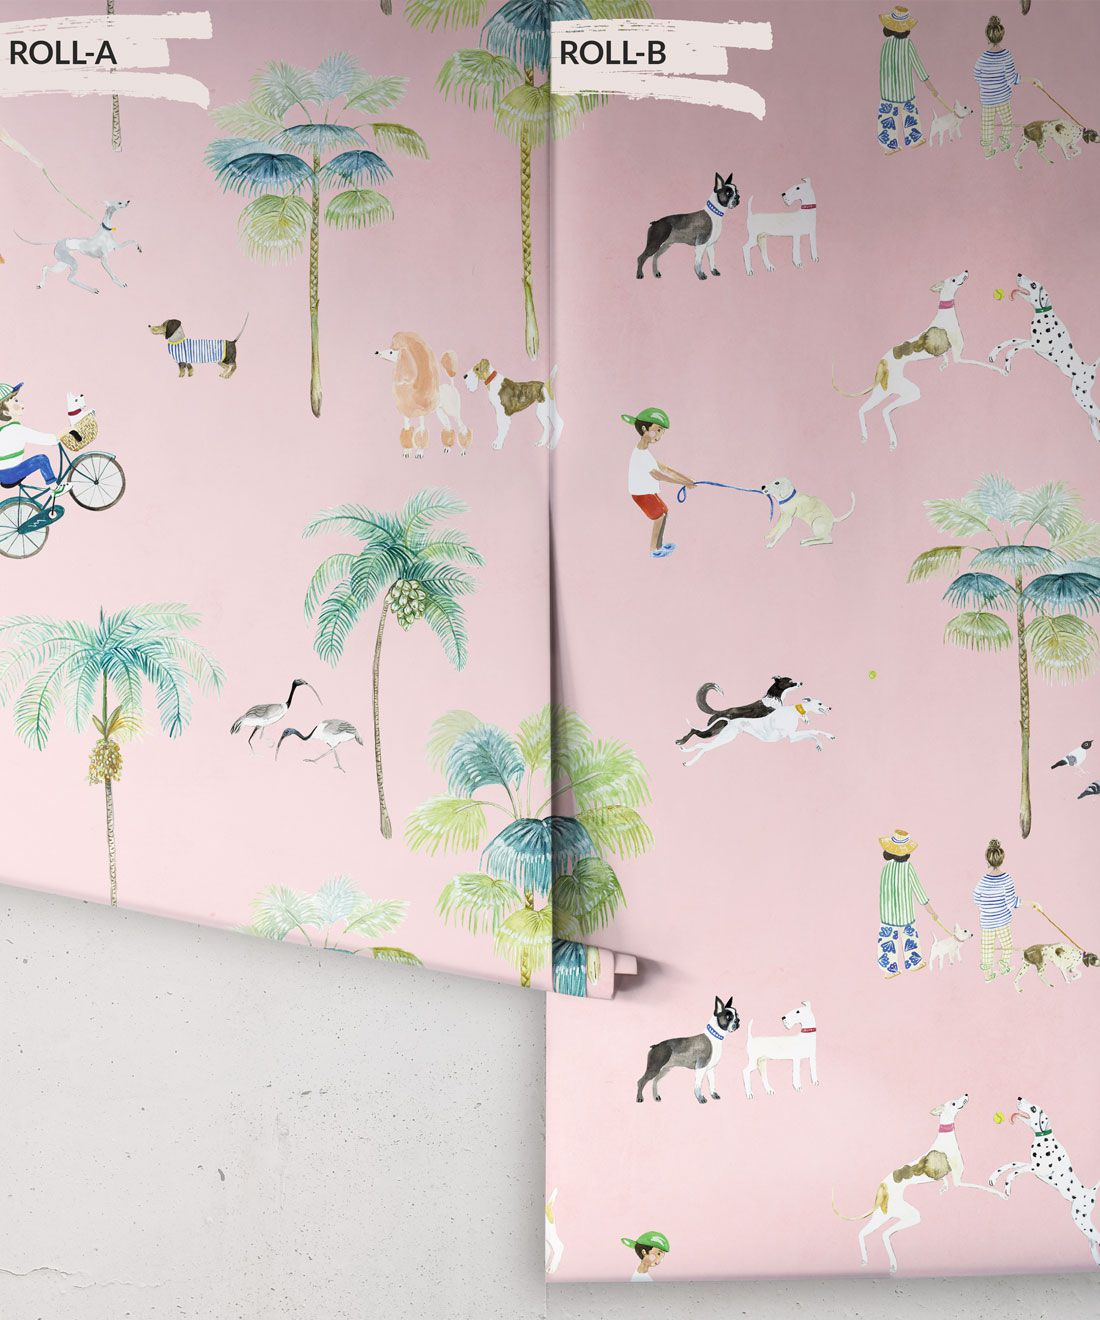 At The Dog Park Wallpaper • Kids Wallpaper • Pink • Rolls